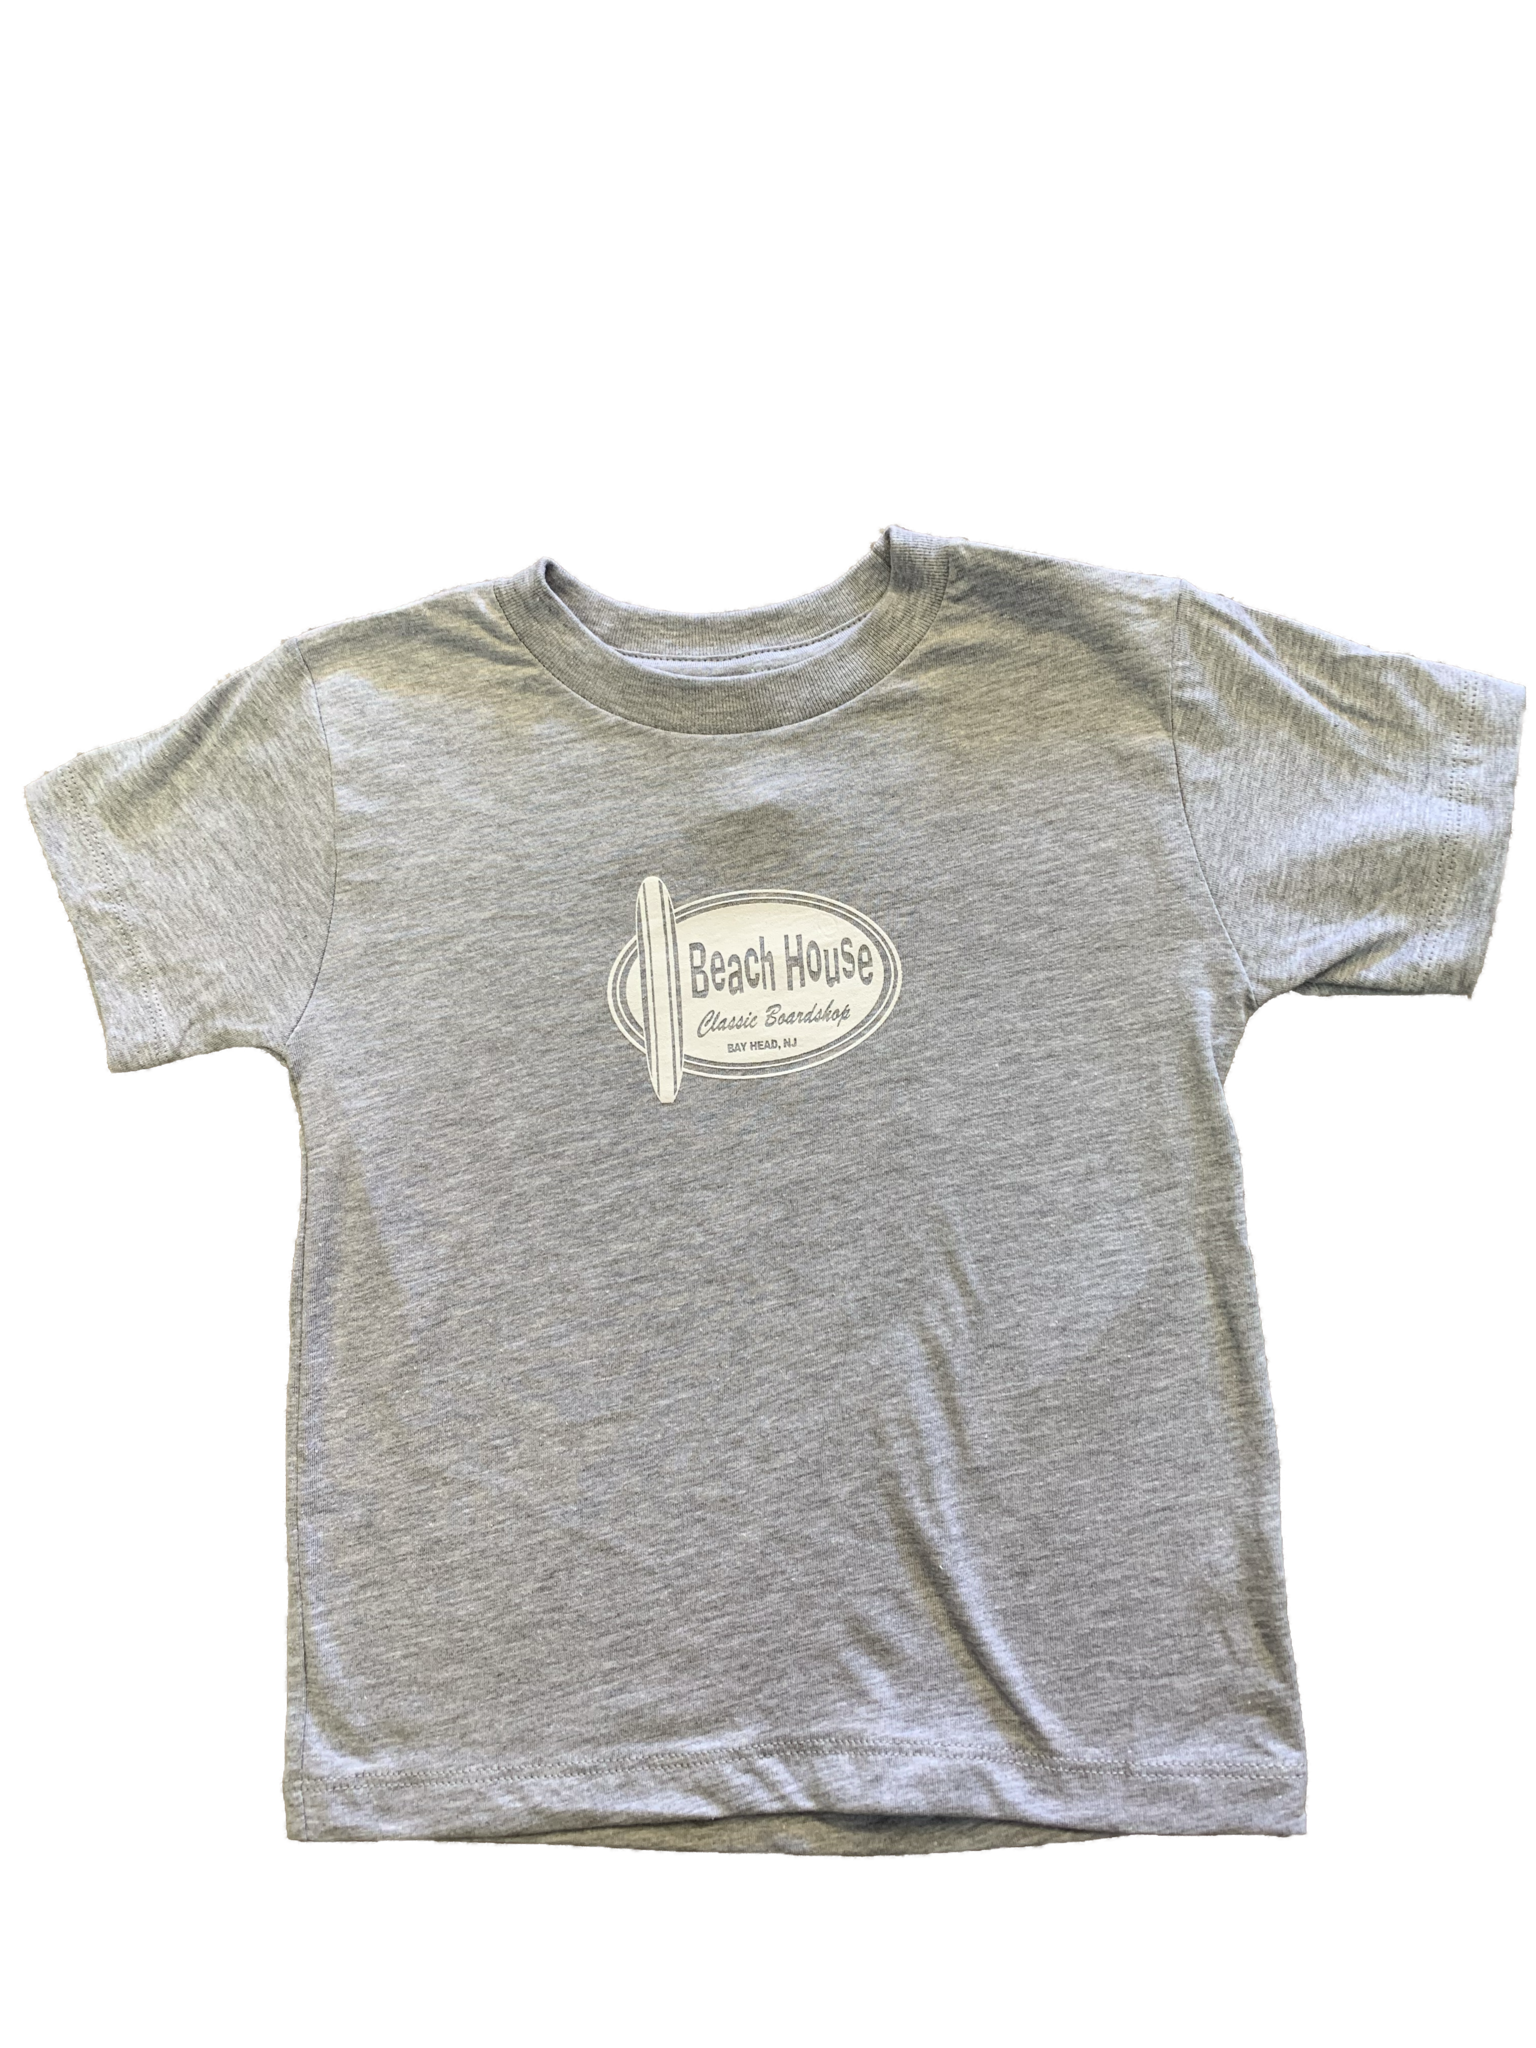 Beach House Beach House Toddler Short Sleeve Tee